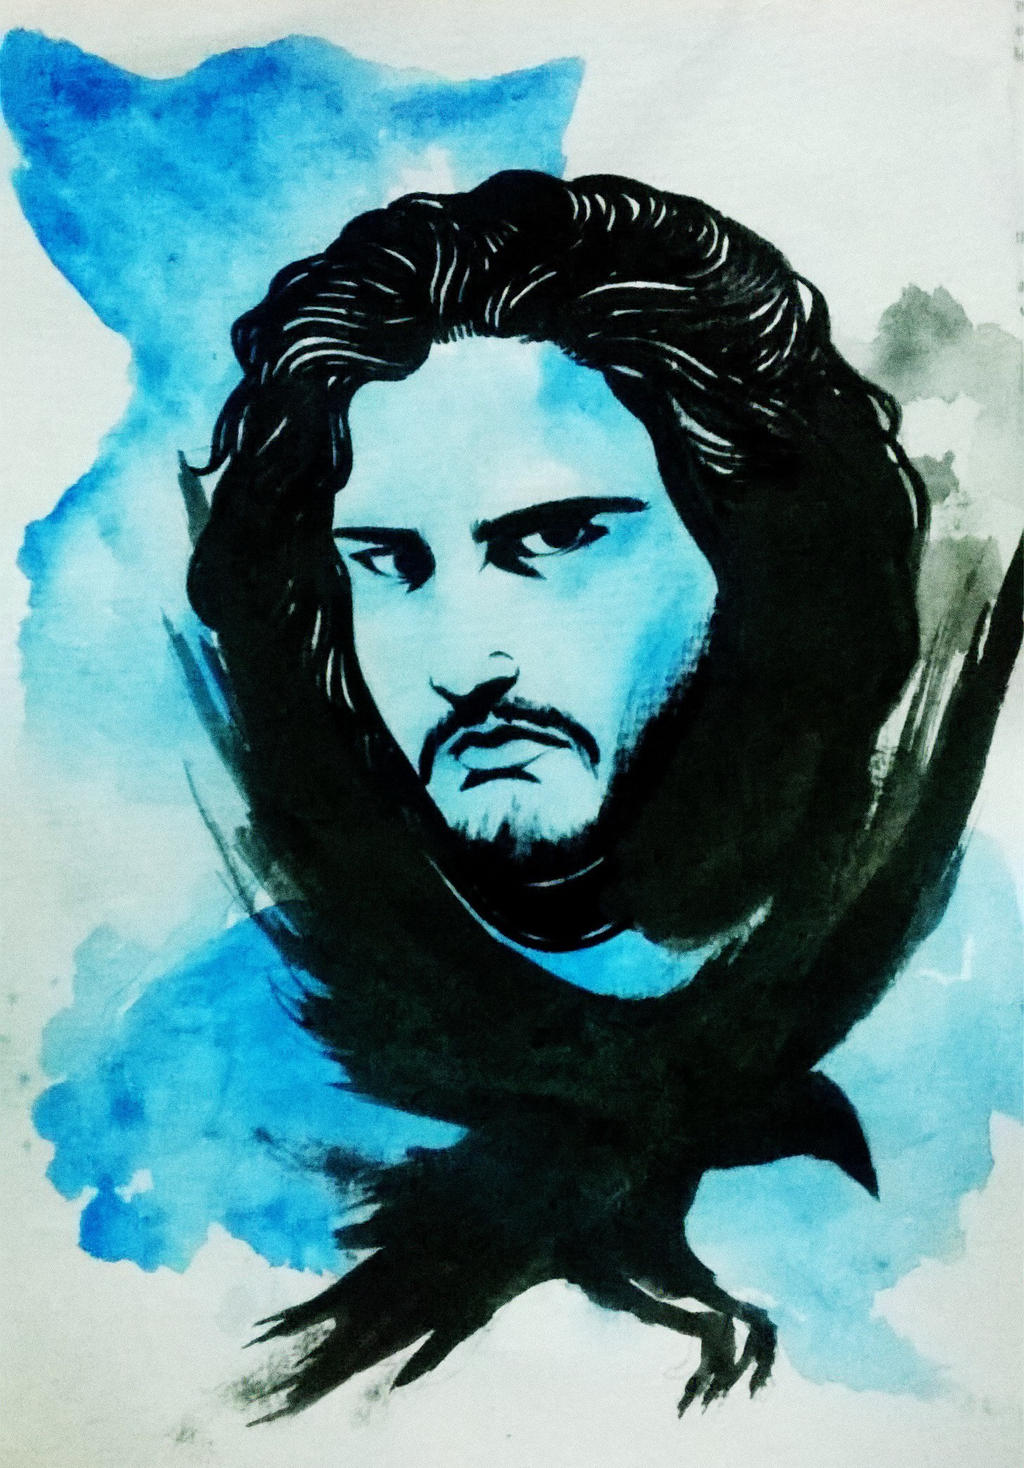 Jon by JasonAvenger23